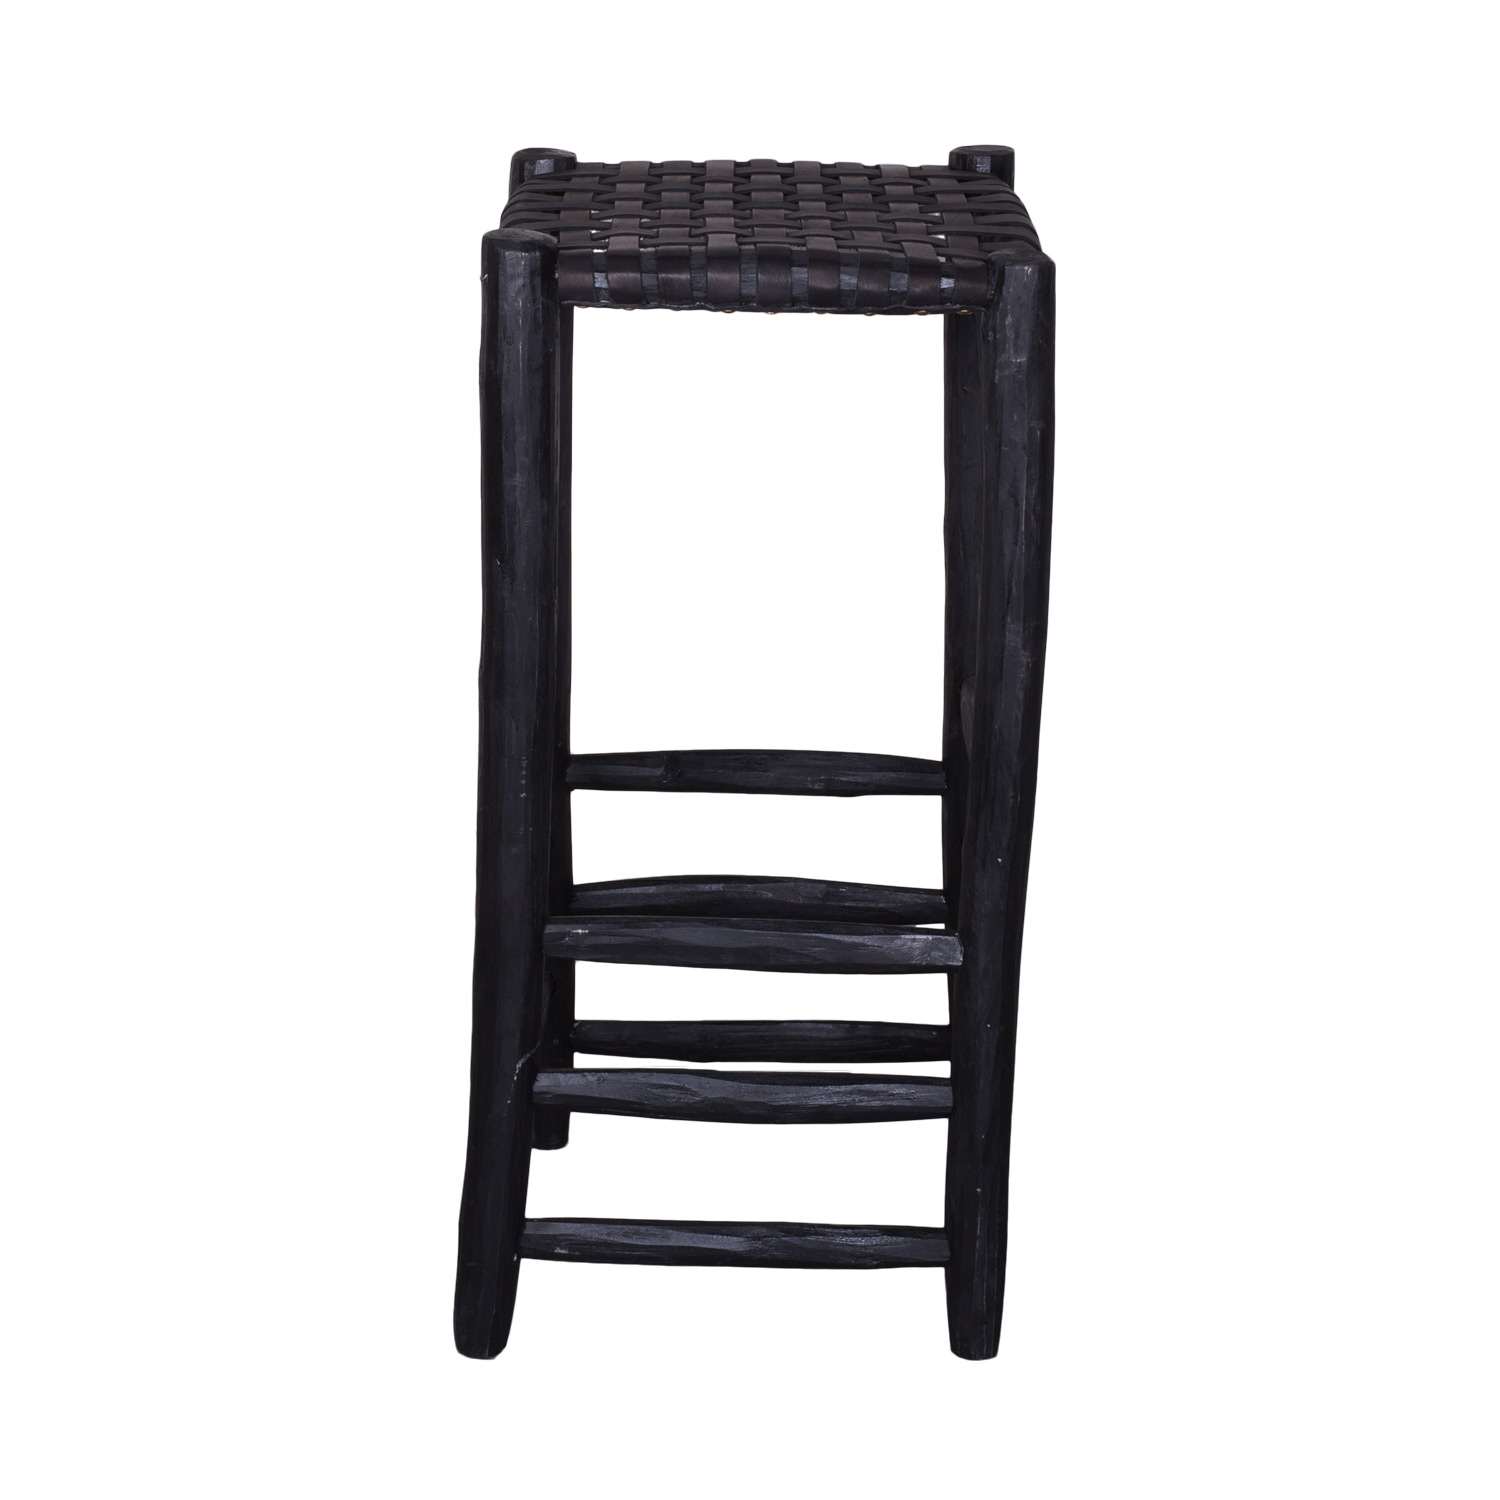 Bar stool black, black leather seating